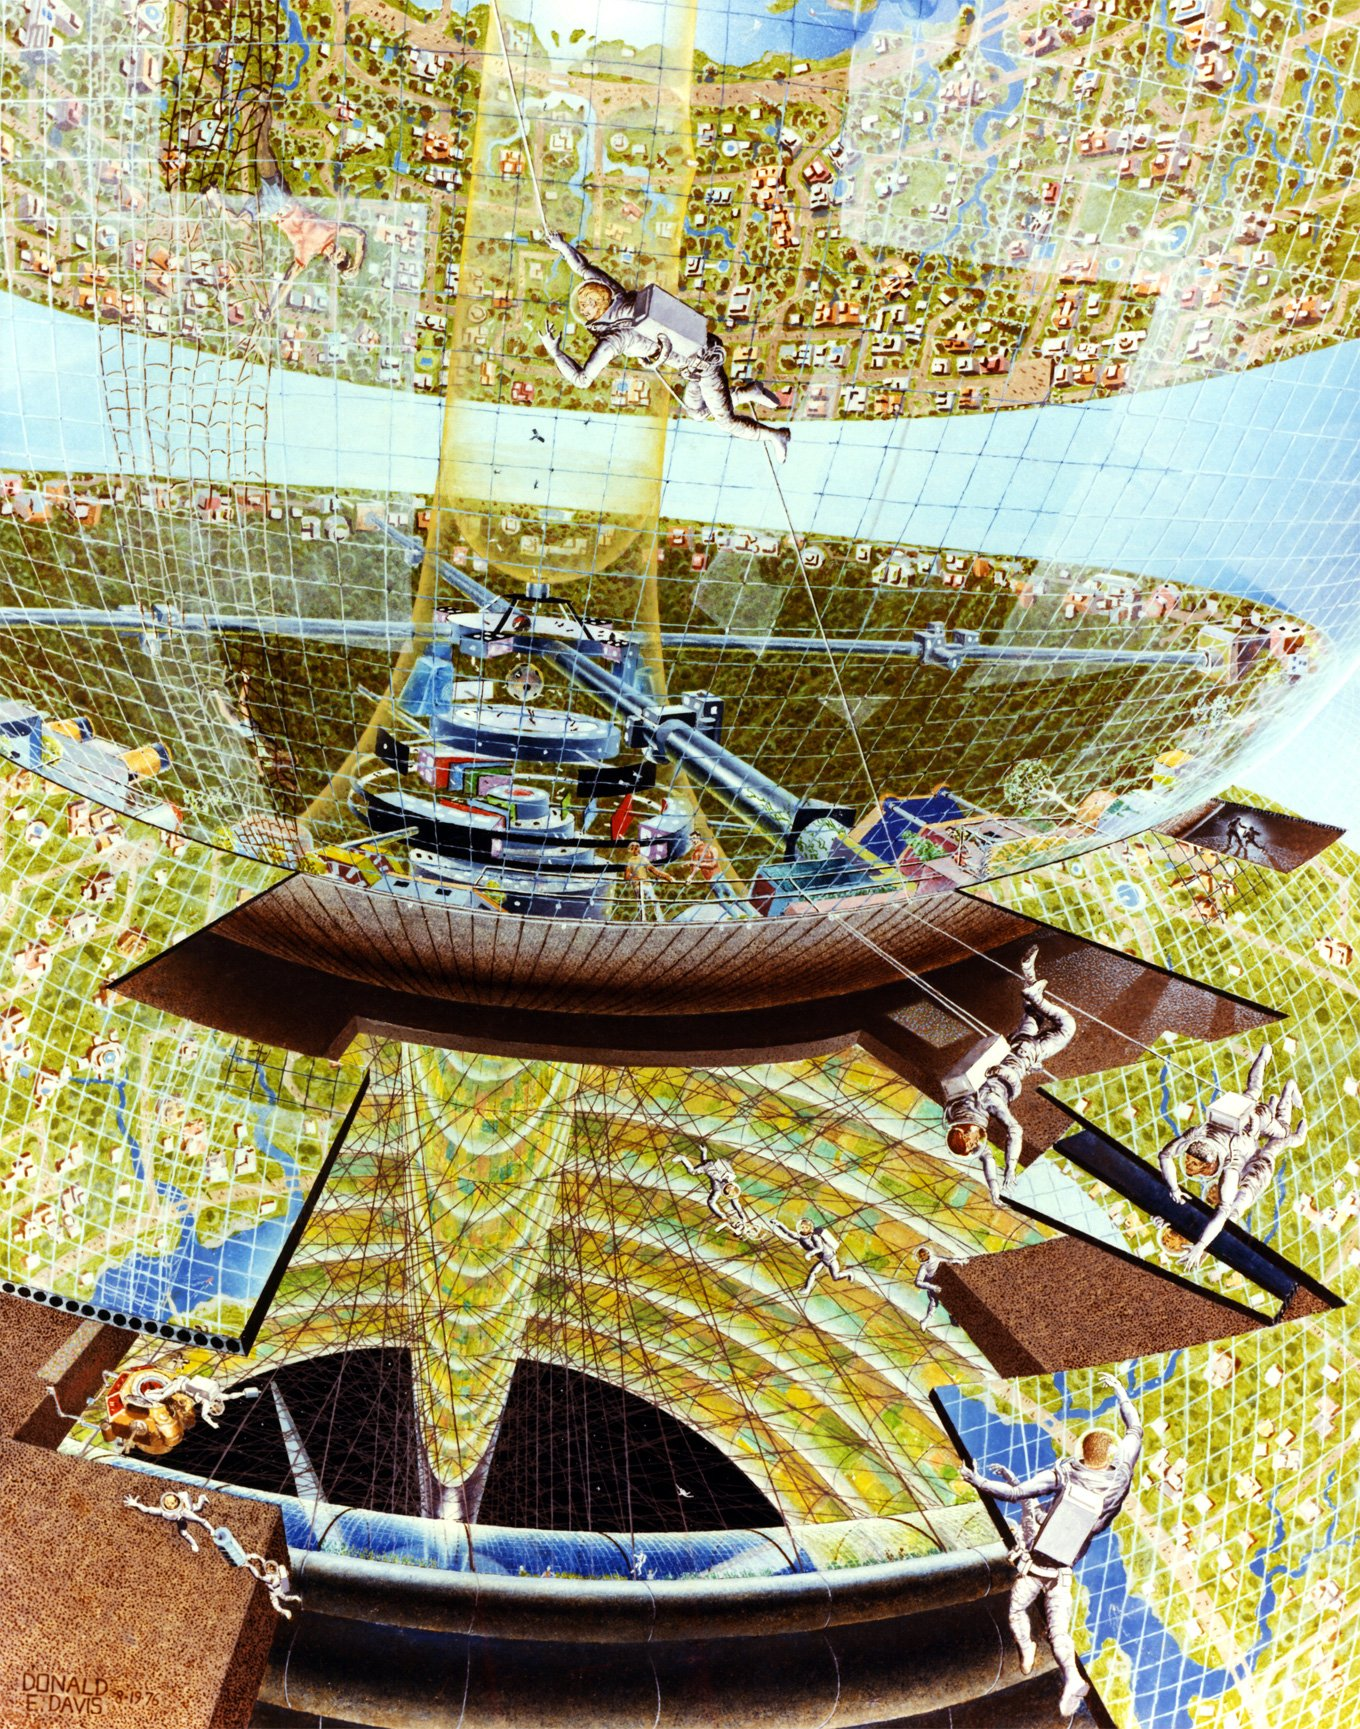 hight resolution of construction of a bernal sphere 1975 don davis nasa ames research center